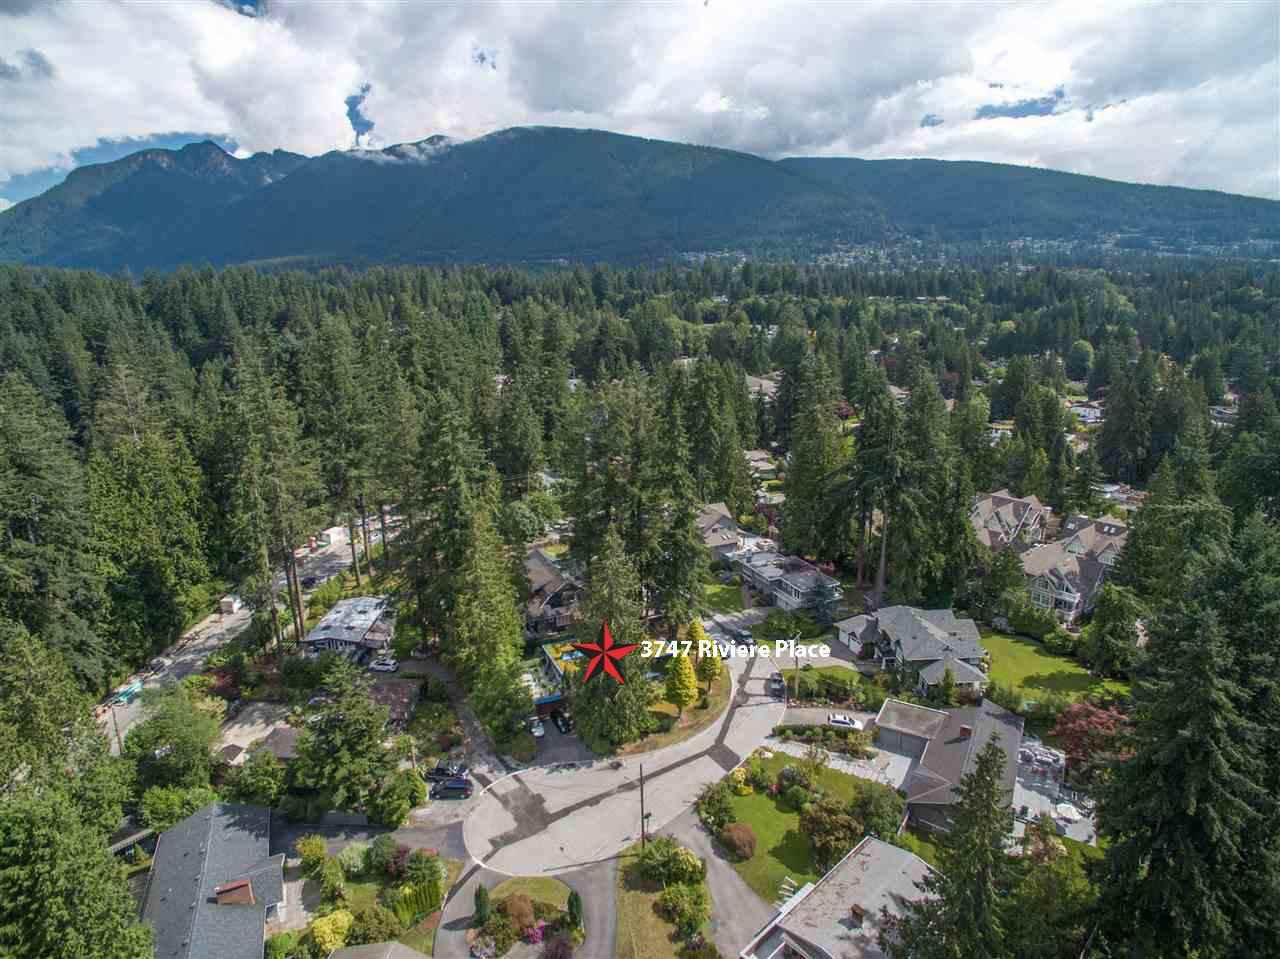 Main Photo: 3747 RIVIERE PLACE in North Vancouver: Edgemont House for sale : MLS®# R2089697